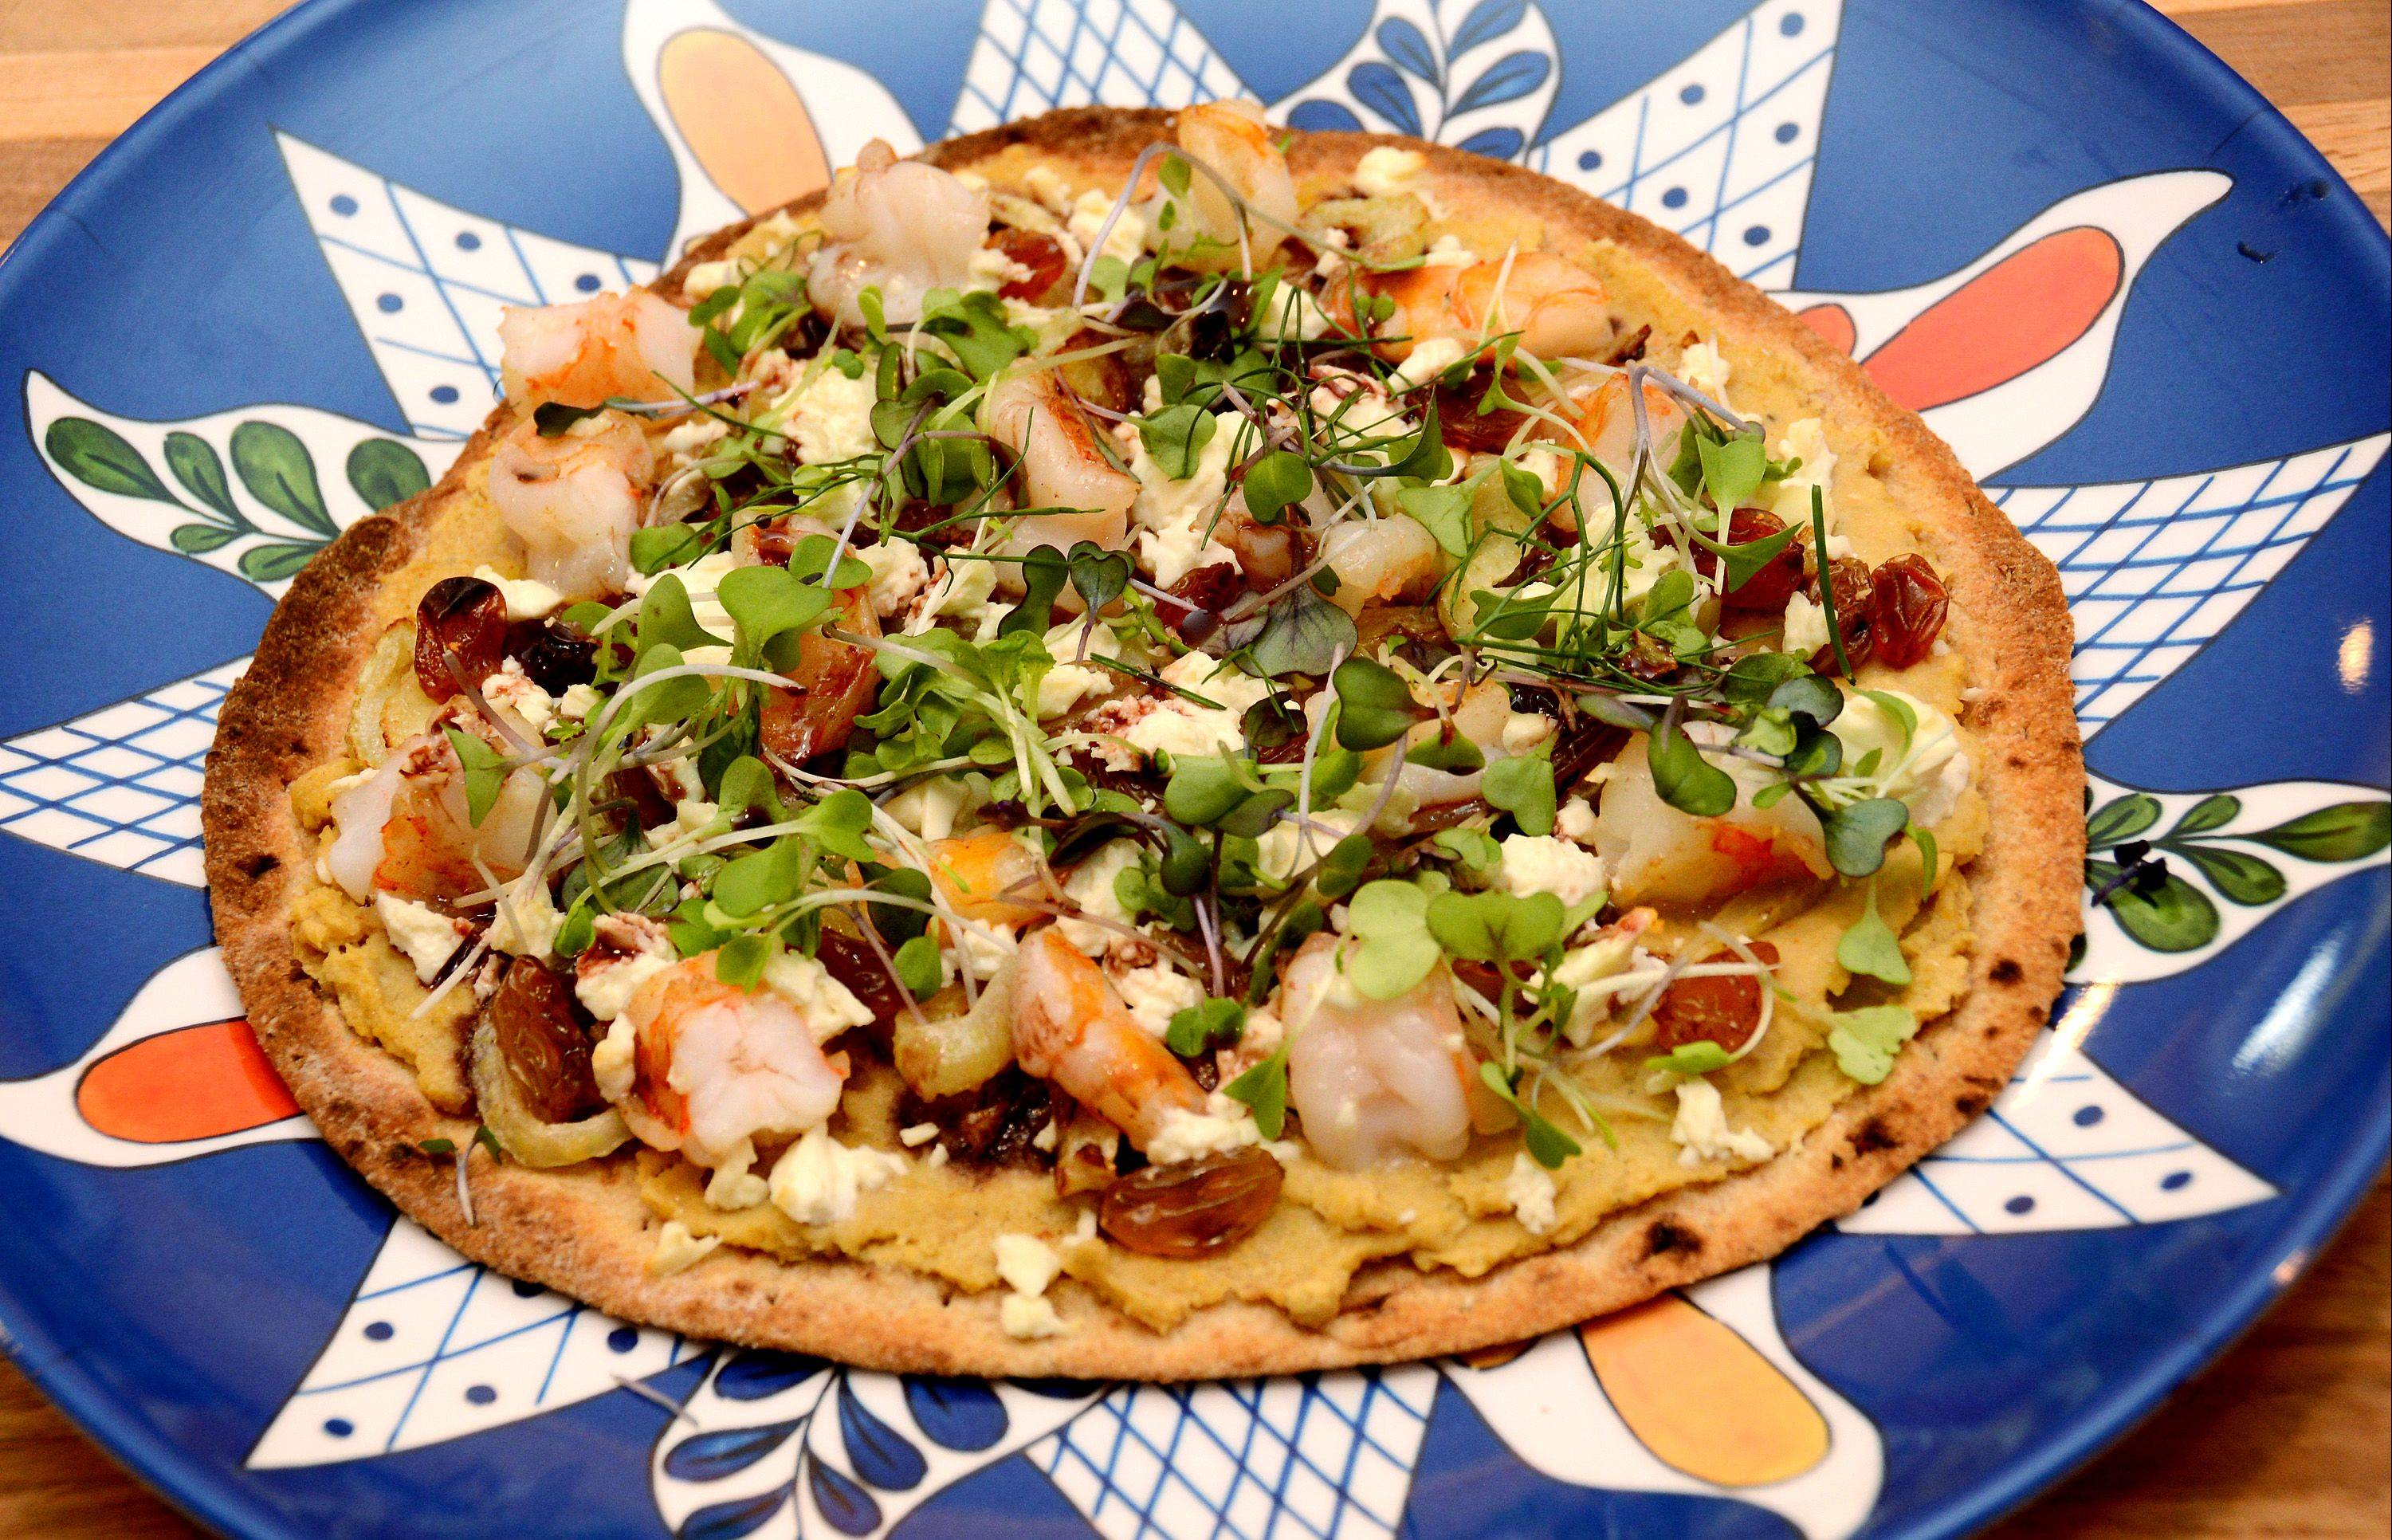 Lori Motyka's flatbread pizza started with a sauce made with sardines and chick peas.